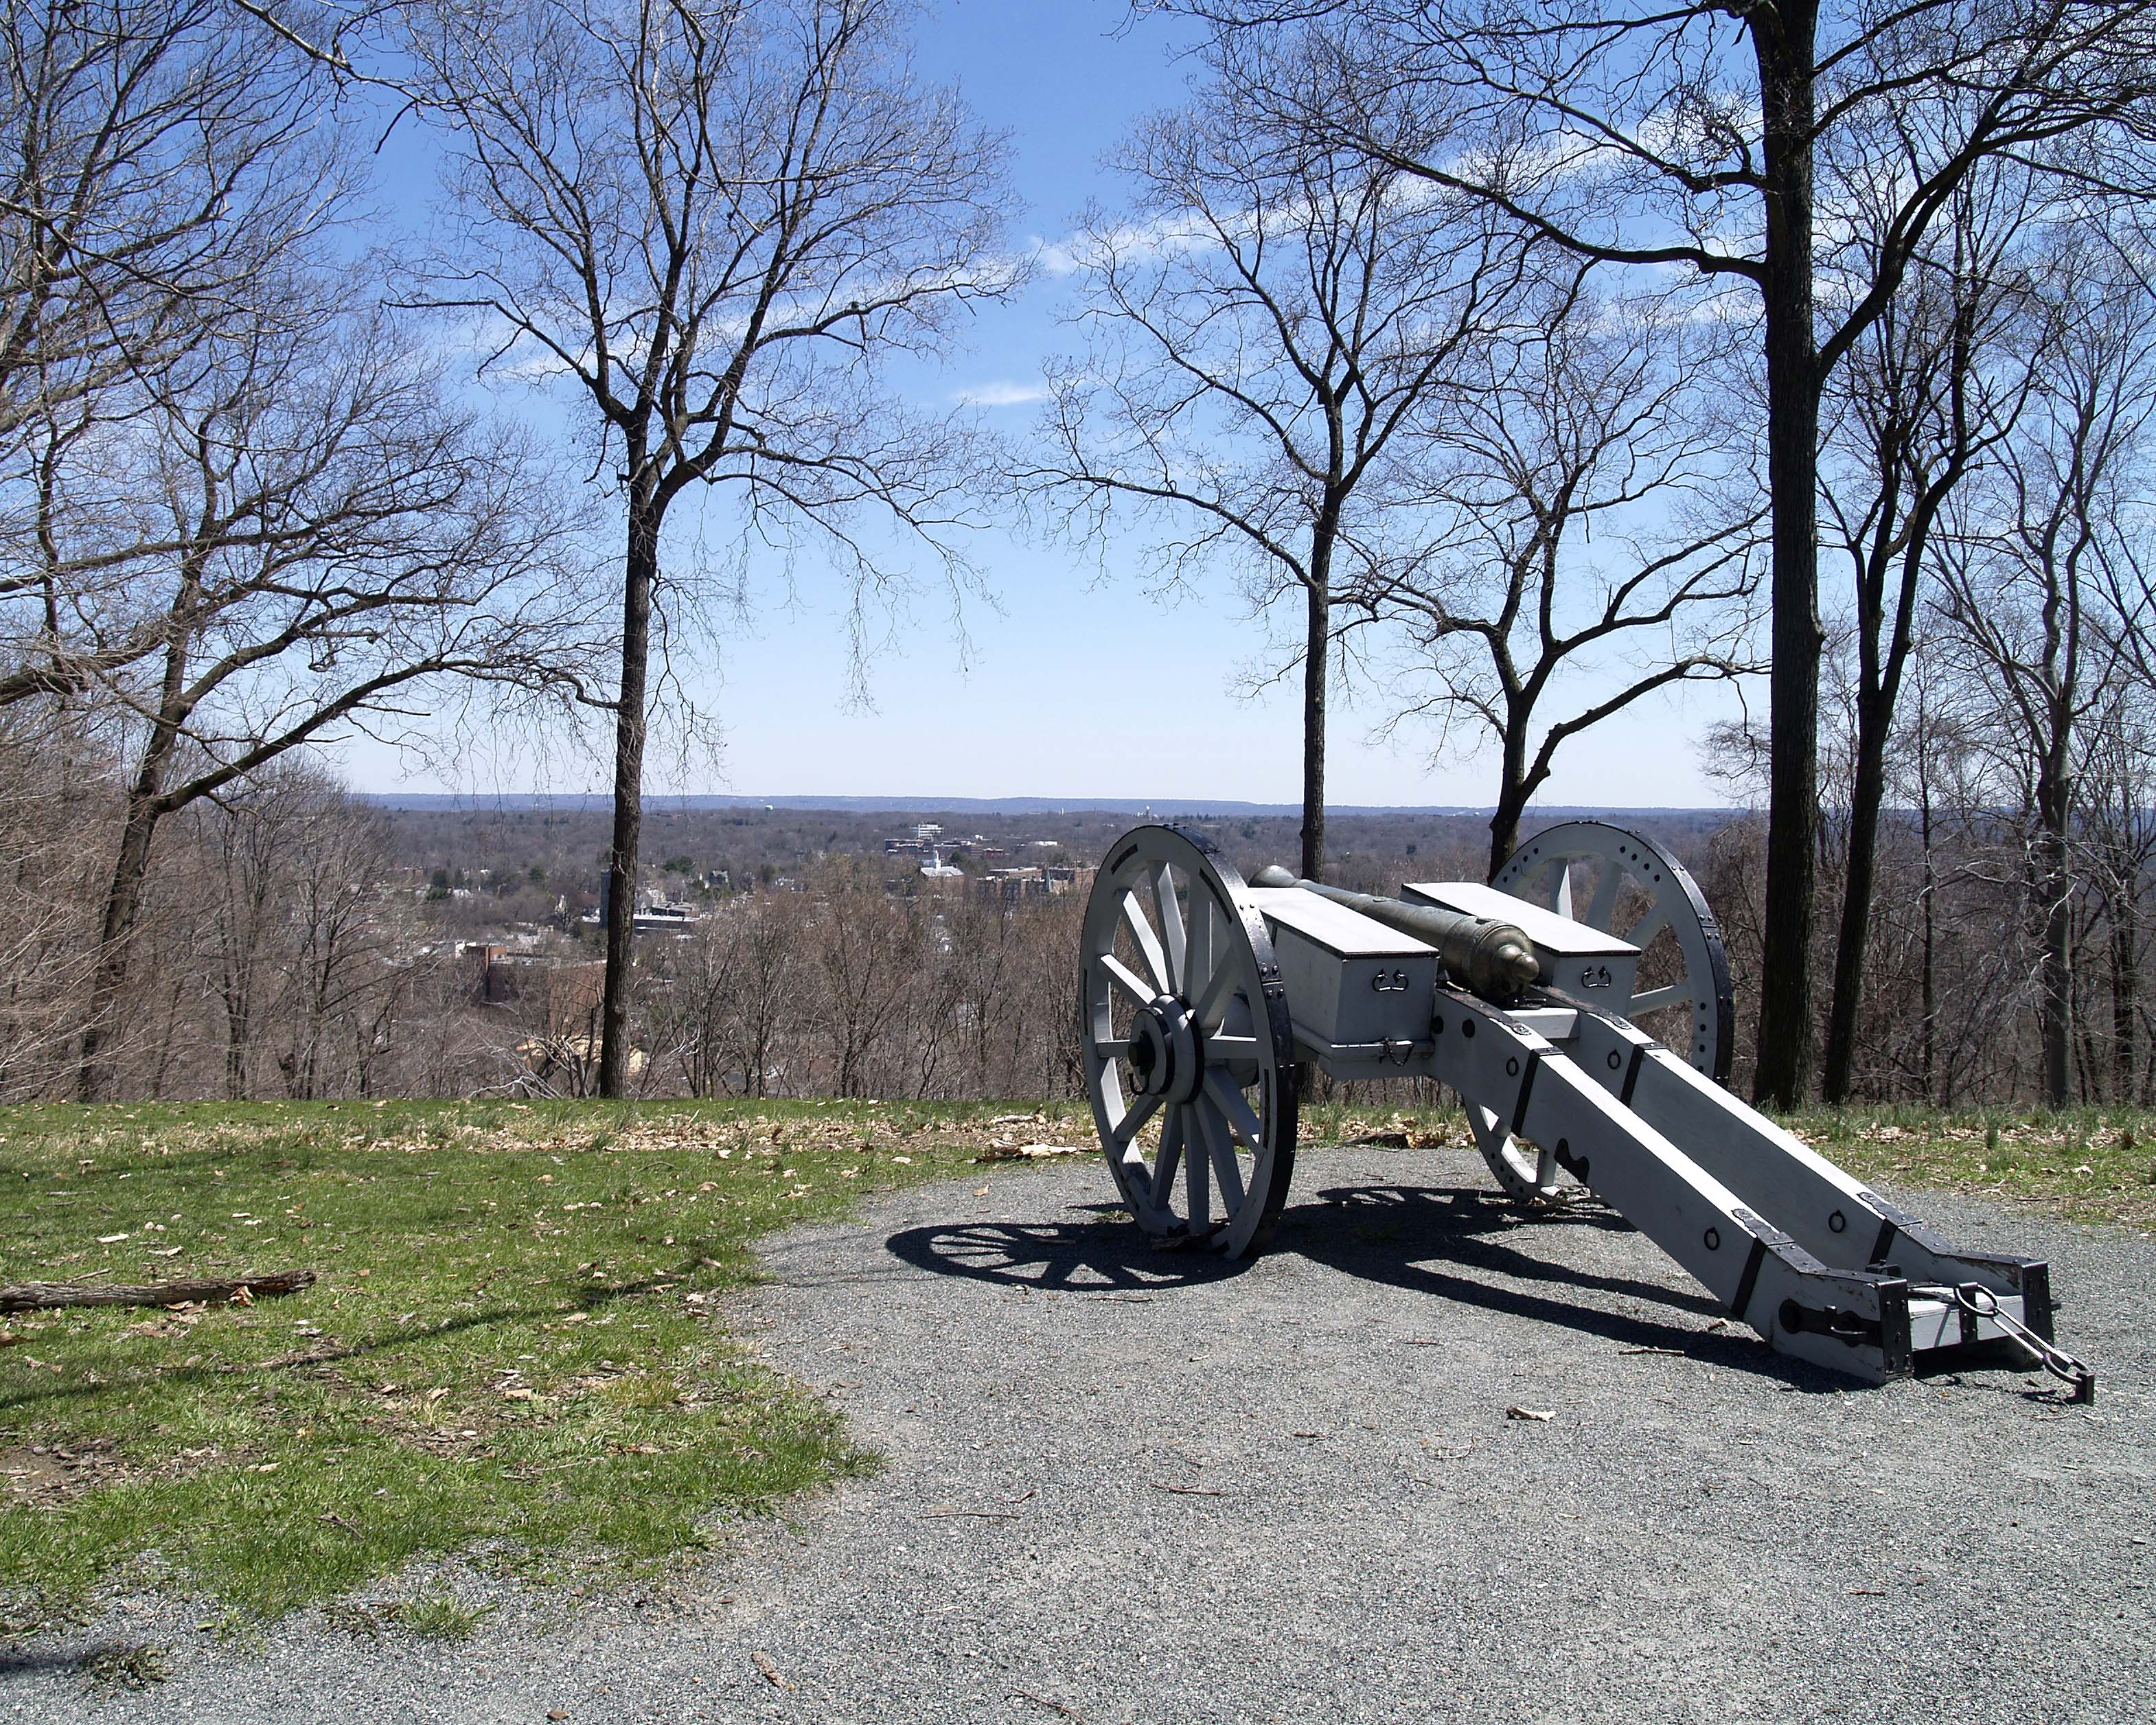 Photo of the Cannon at Fort Nonsense with view of Morristown in the distance